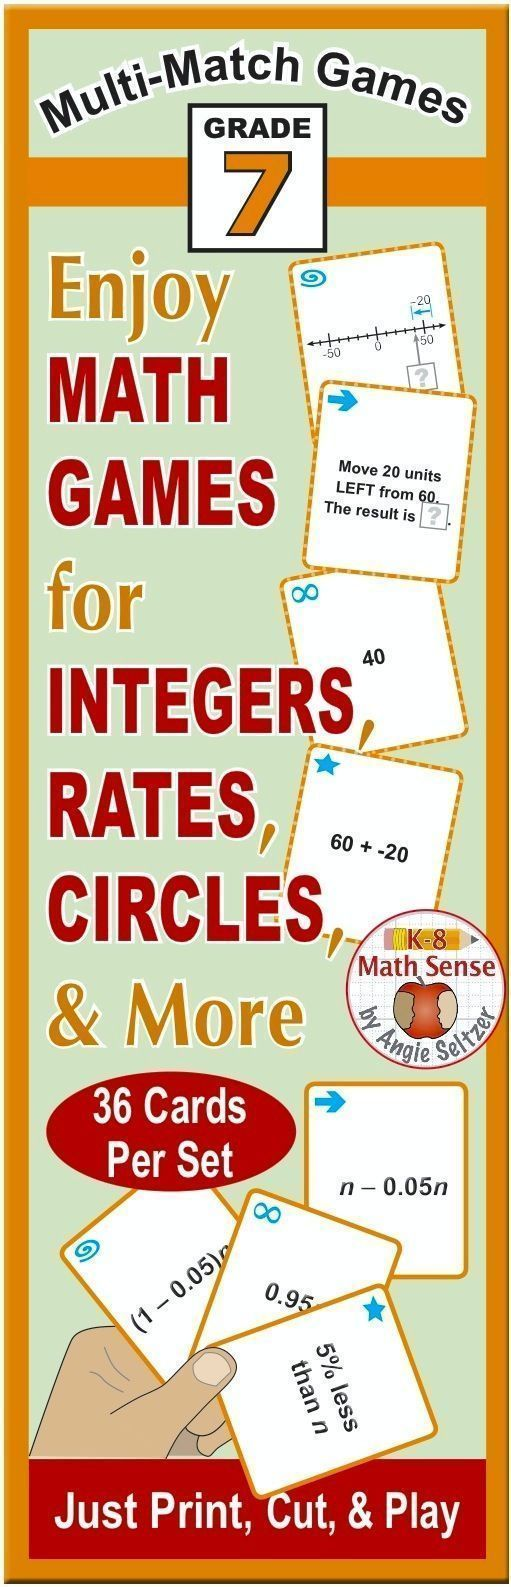 This bundle includes 14 printable sets of 36 cards for Grade 7 math. Topics include integers, expressions, area and perimeters of circles, rates, probability, and more. Just print on plain paper, cut, and play one of four fun games in the Games Guide (included). ~by Angie Seltzer